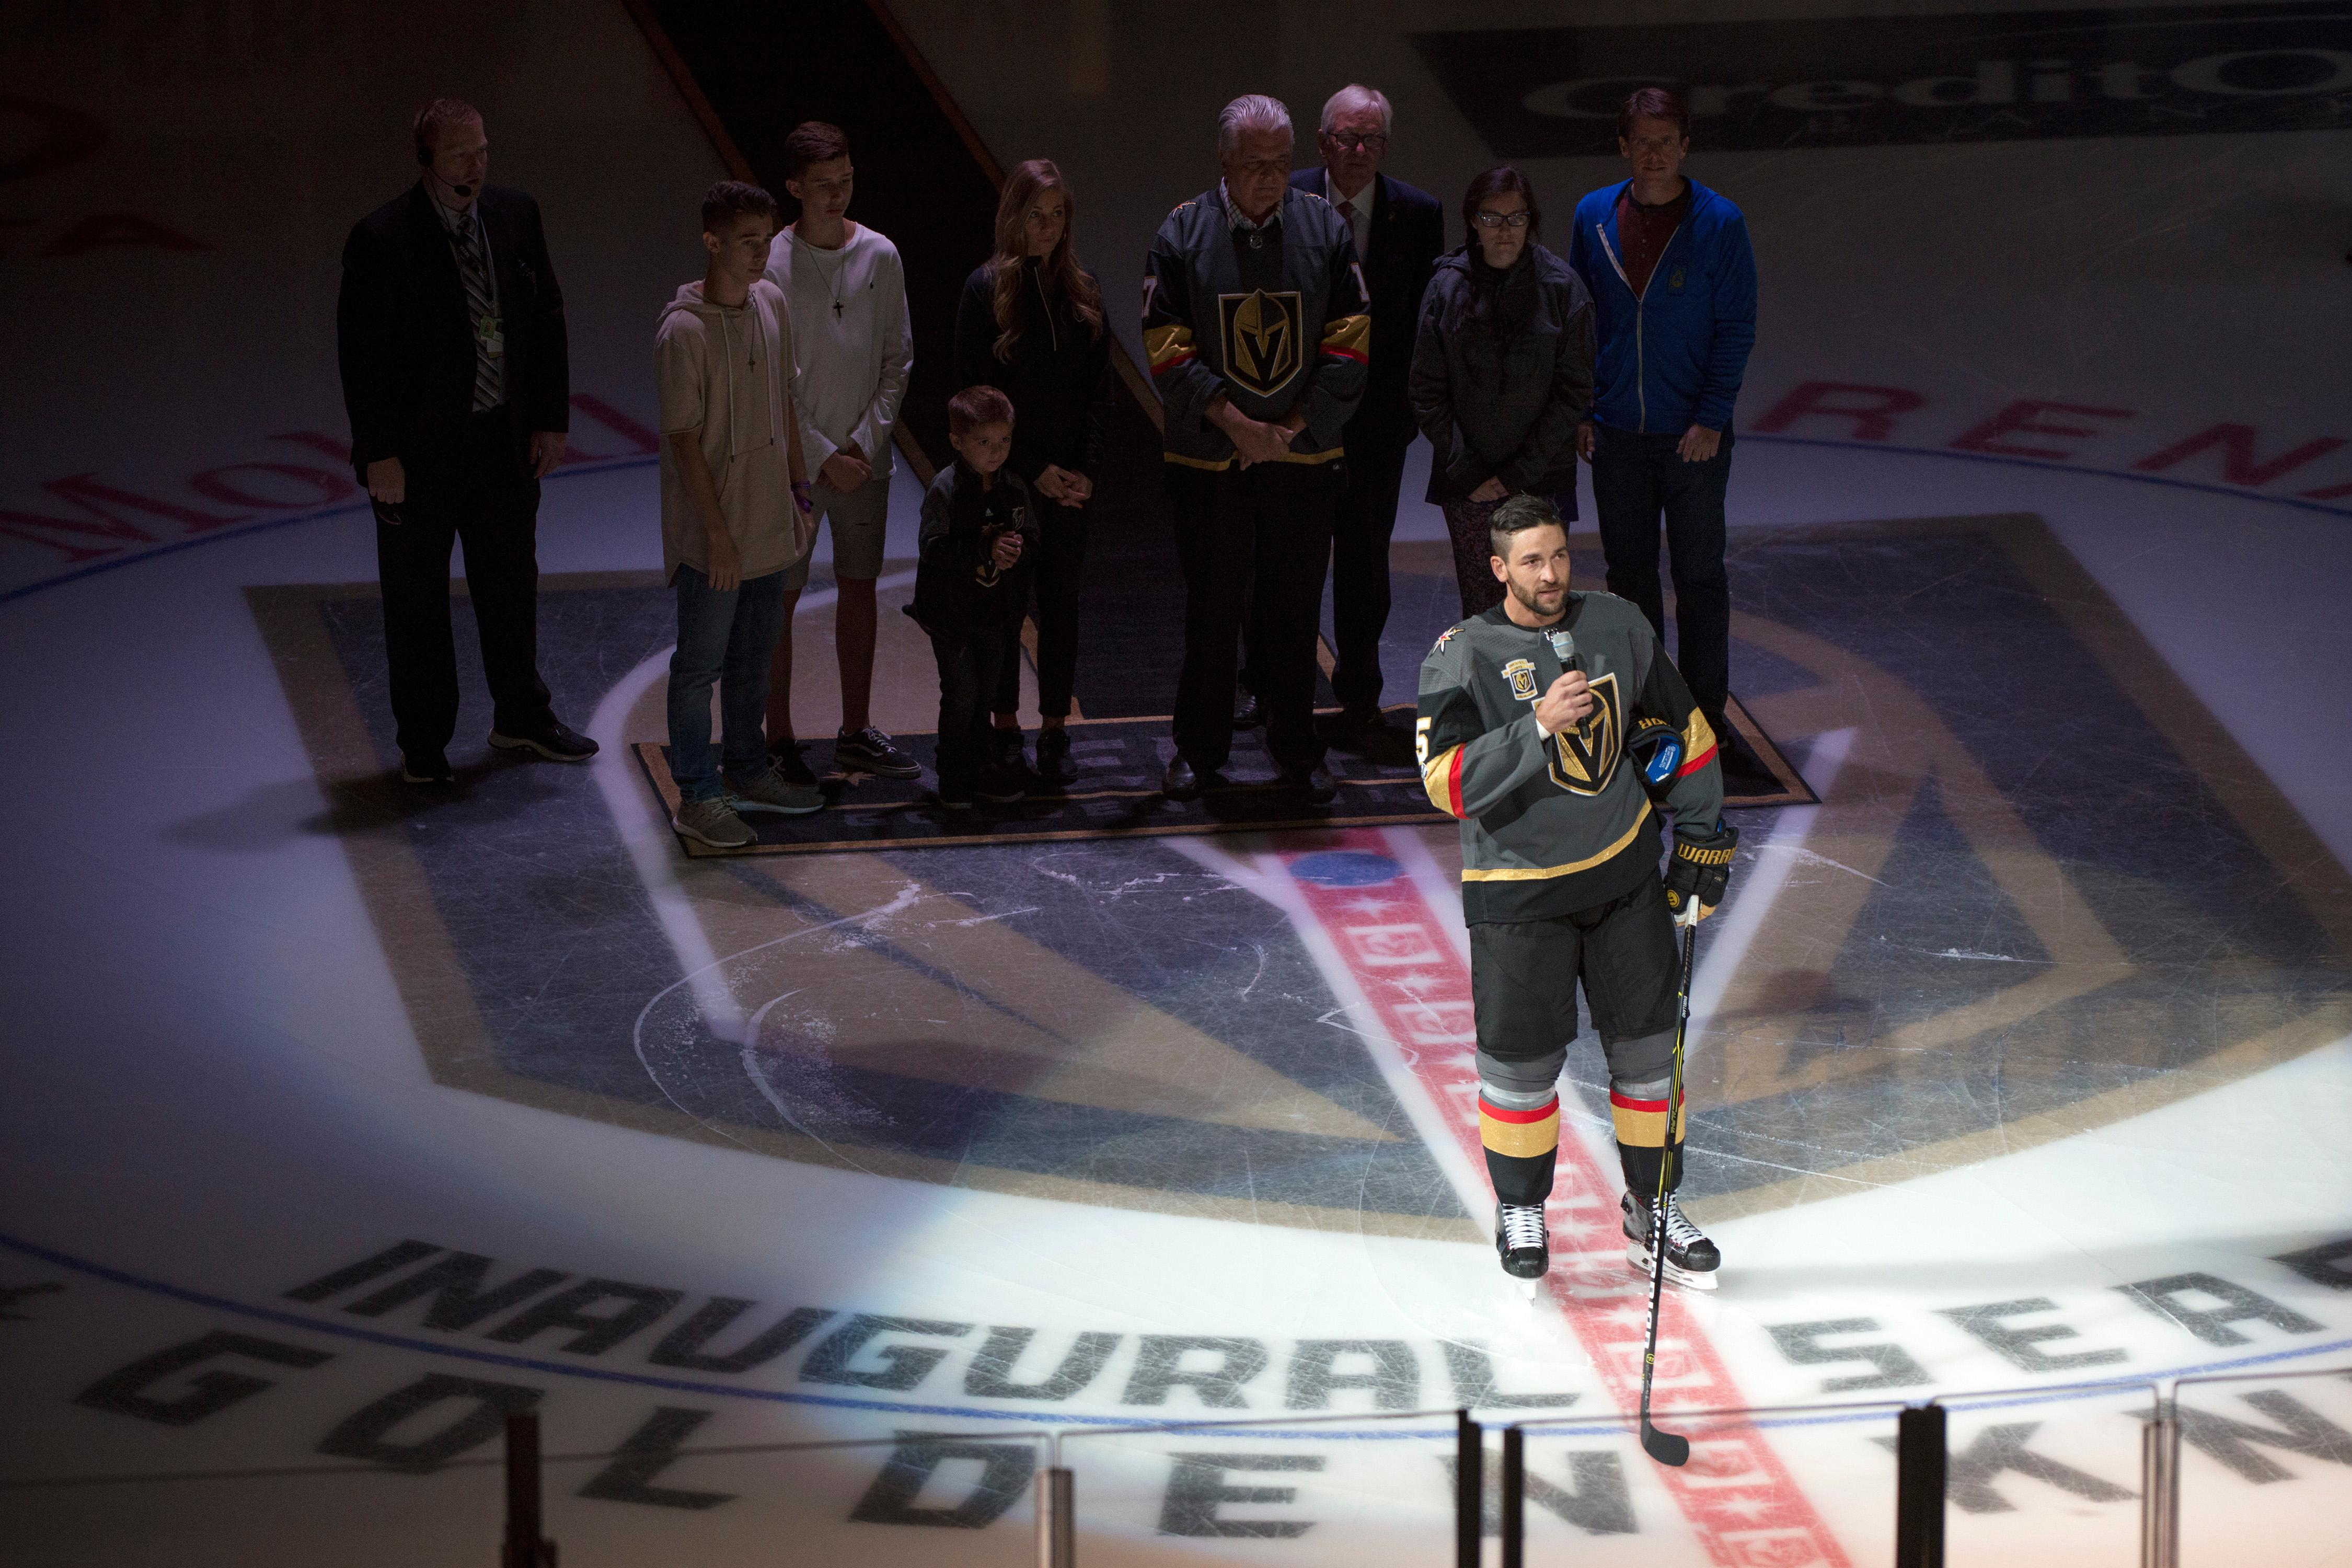 Vegas Golden Knights defenseman Deryk Engelland (5) addresses the crowd before the Knights home opener Tuesday, Oct. 10, 2017, at the T-Mobile Arena. The Knights won 5-2 to extend their winning streak to 3-0. CREDIT: Sam Morris/Las Vegas News Bureau